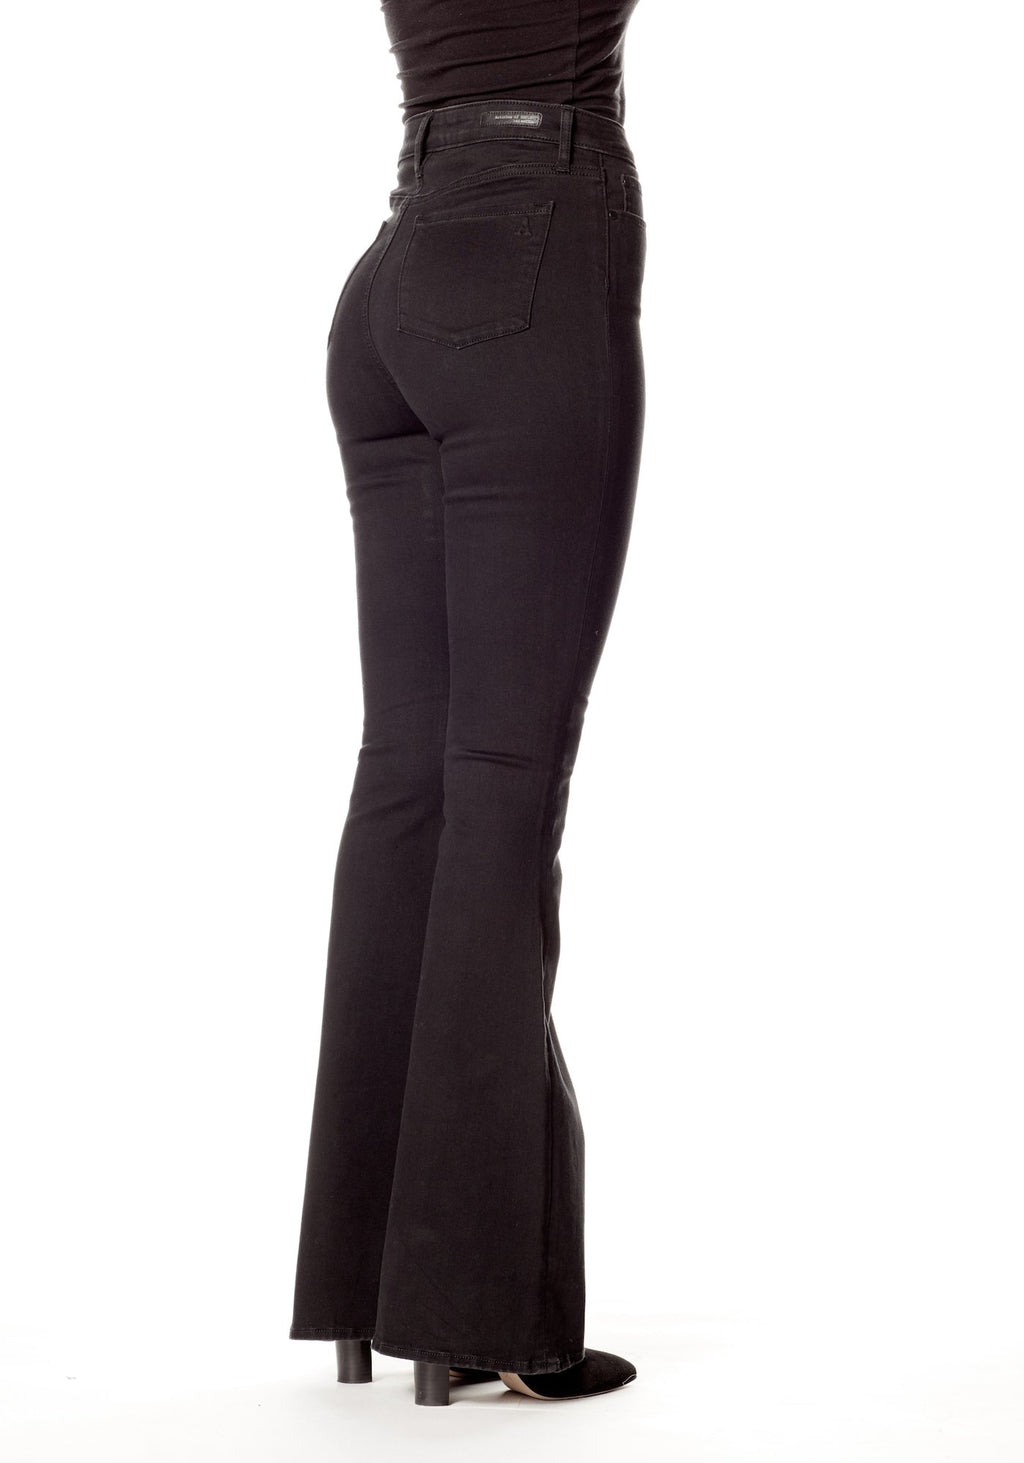 THE BRIDGETTE HIGH RISE FLARES